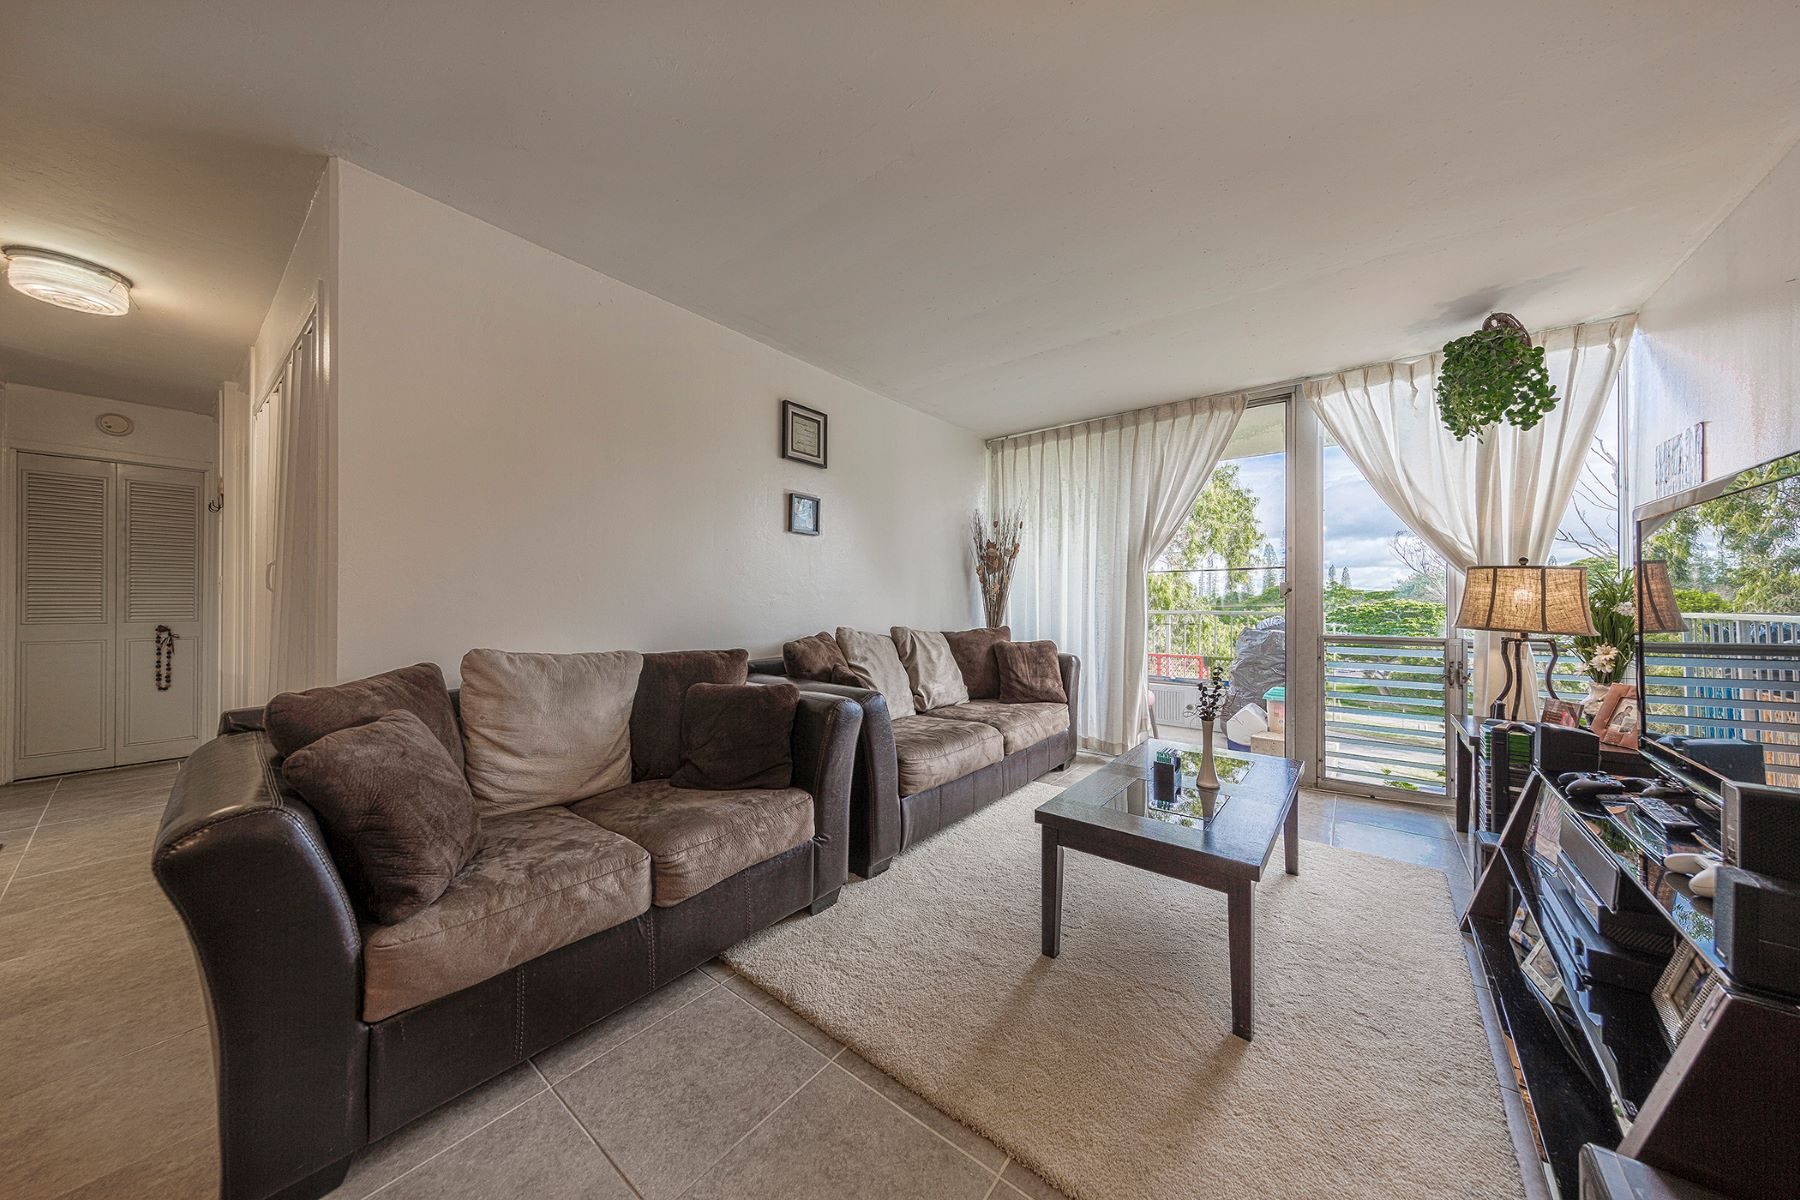 Condominium for Sale at Quiet Woodwinds 1600 Wilikina Dr #A608 Wahiawa, Hawaii 96786 United States